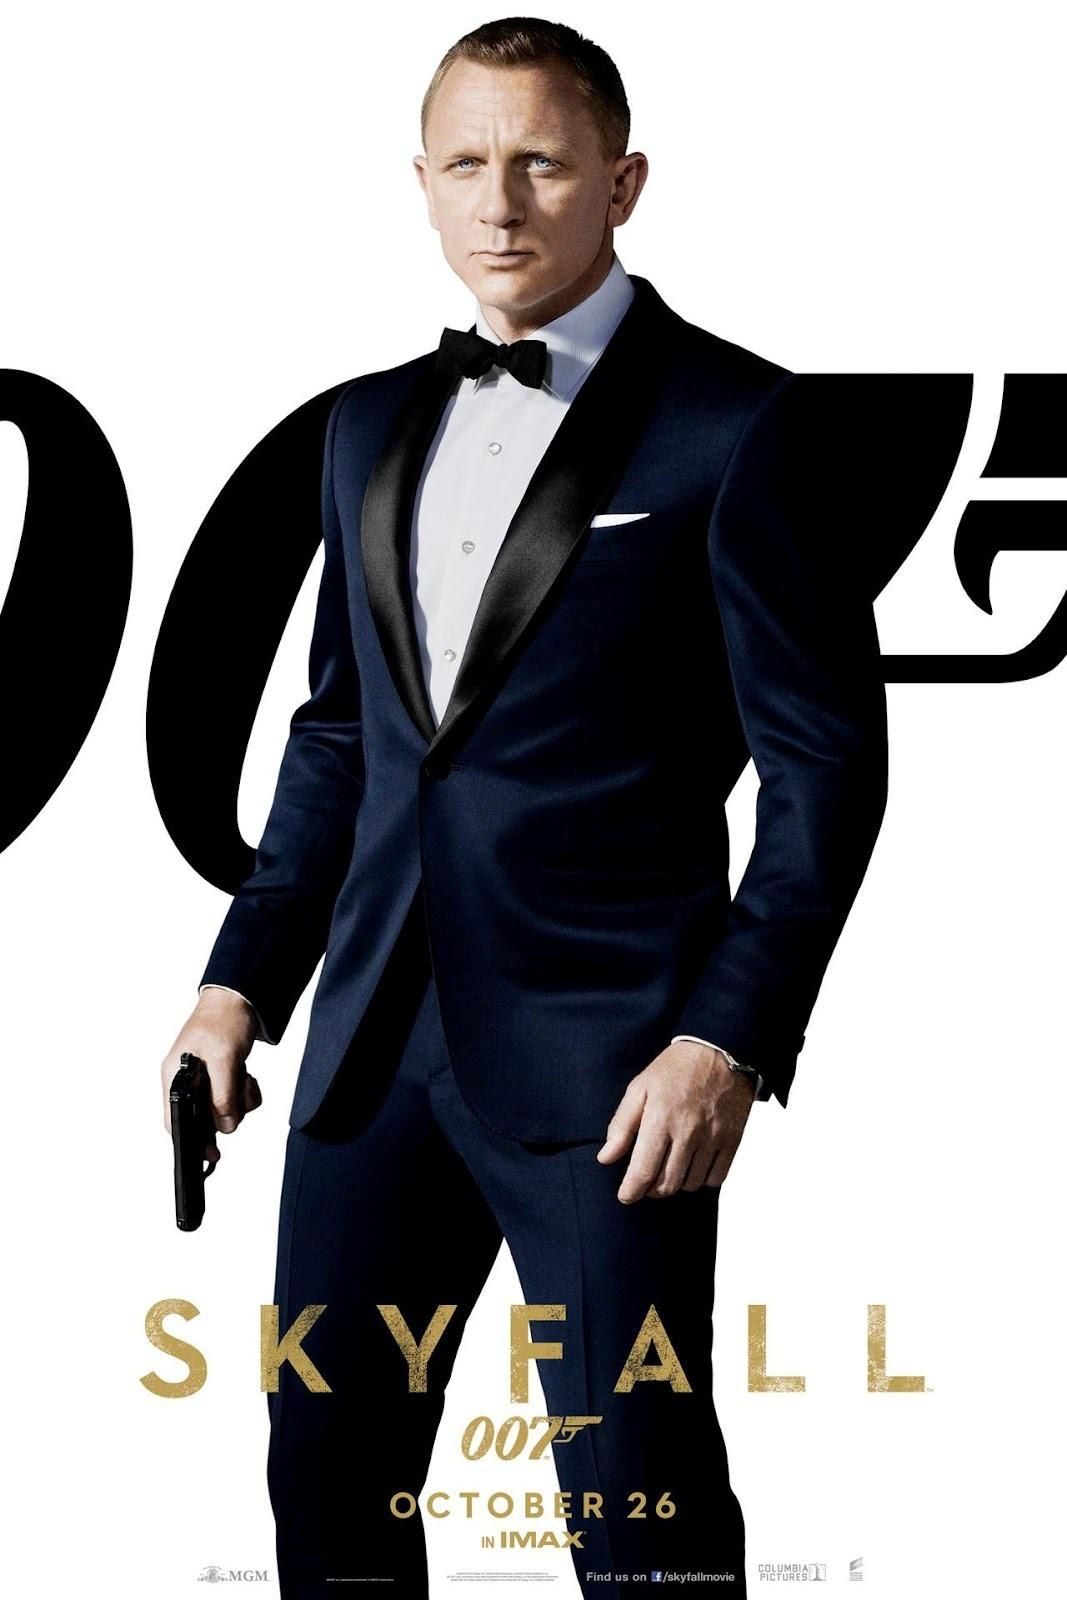 daniel-craig-james-bond-skyfall-tom-ford-tuxedo-dinner-suit ...